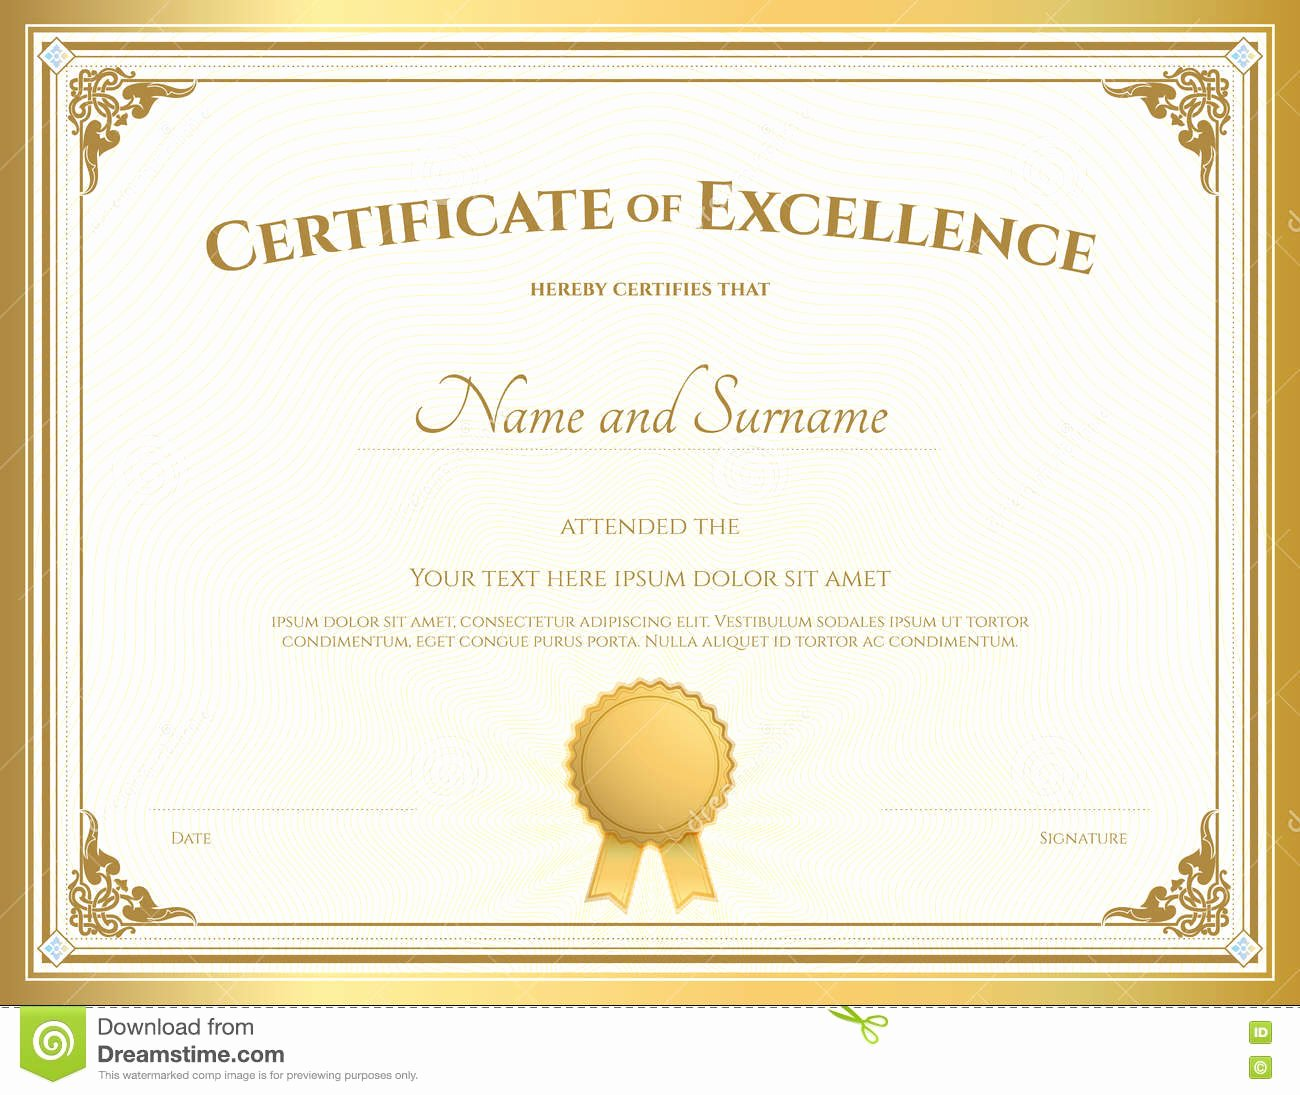 Certificate Of Excellence Template Fresh Certificate Excellence Template with Gold Border Stock Vector Illustration Of T